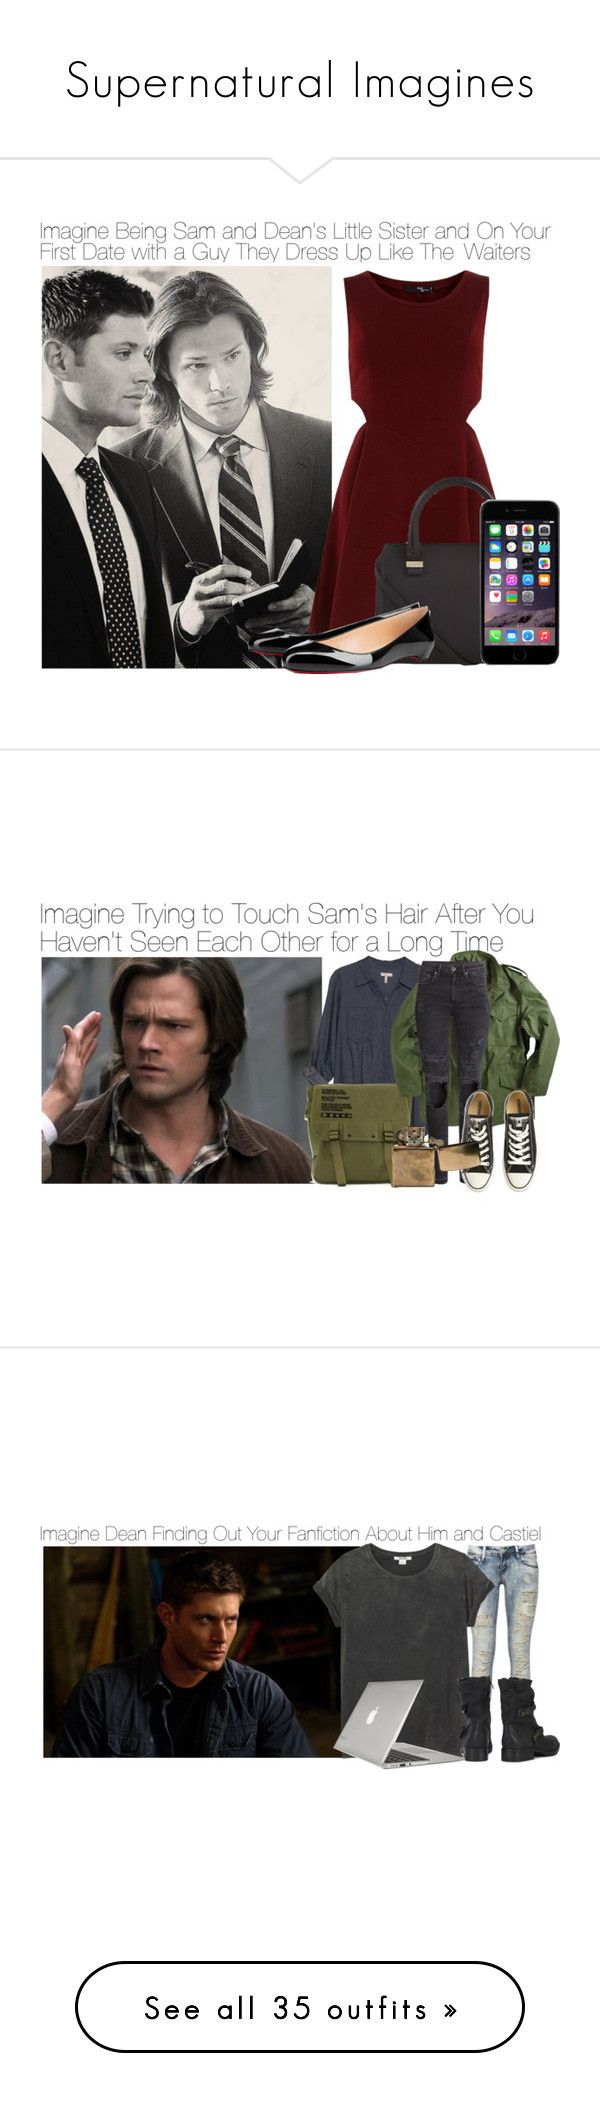 """""""Supernatural Imagines"""" by fandomimagineshere ❤ liked on Polyvore featuring Dorothy Perkins, Victoria Beckham, Christian Louboutin, Joie, H&M, Converse, Monki, Sam Edelman, Speck and Michael Kors"""